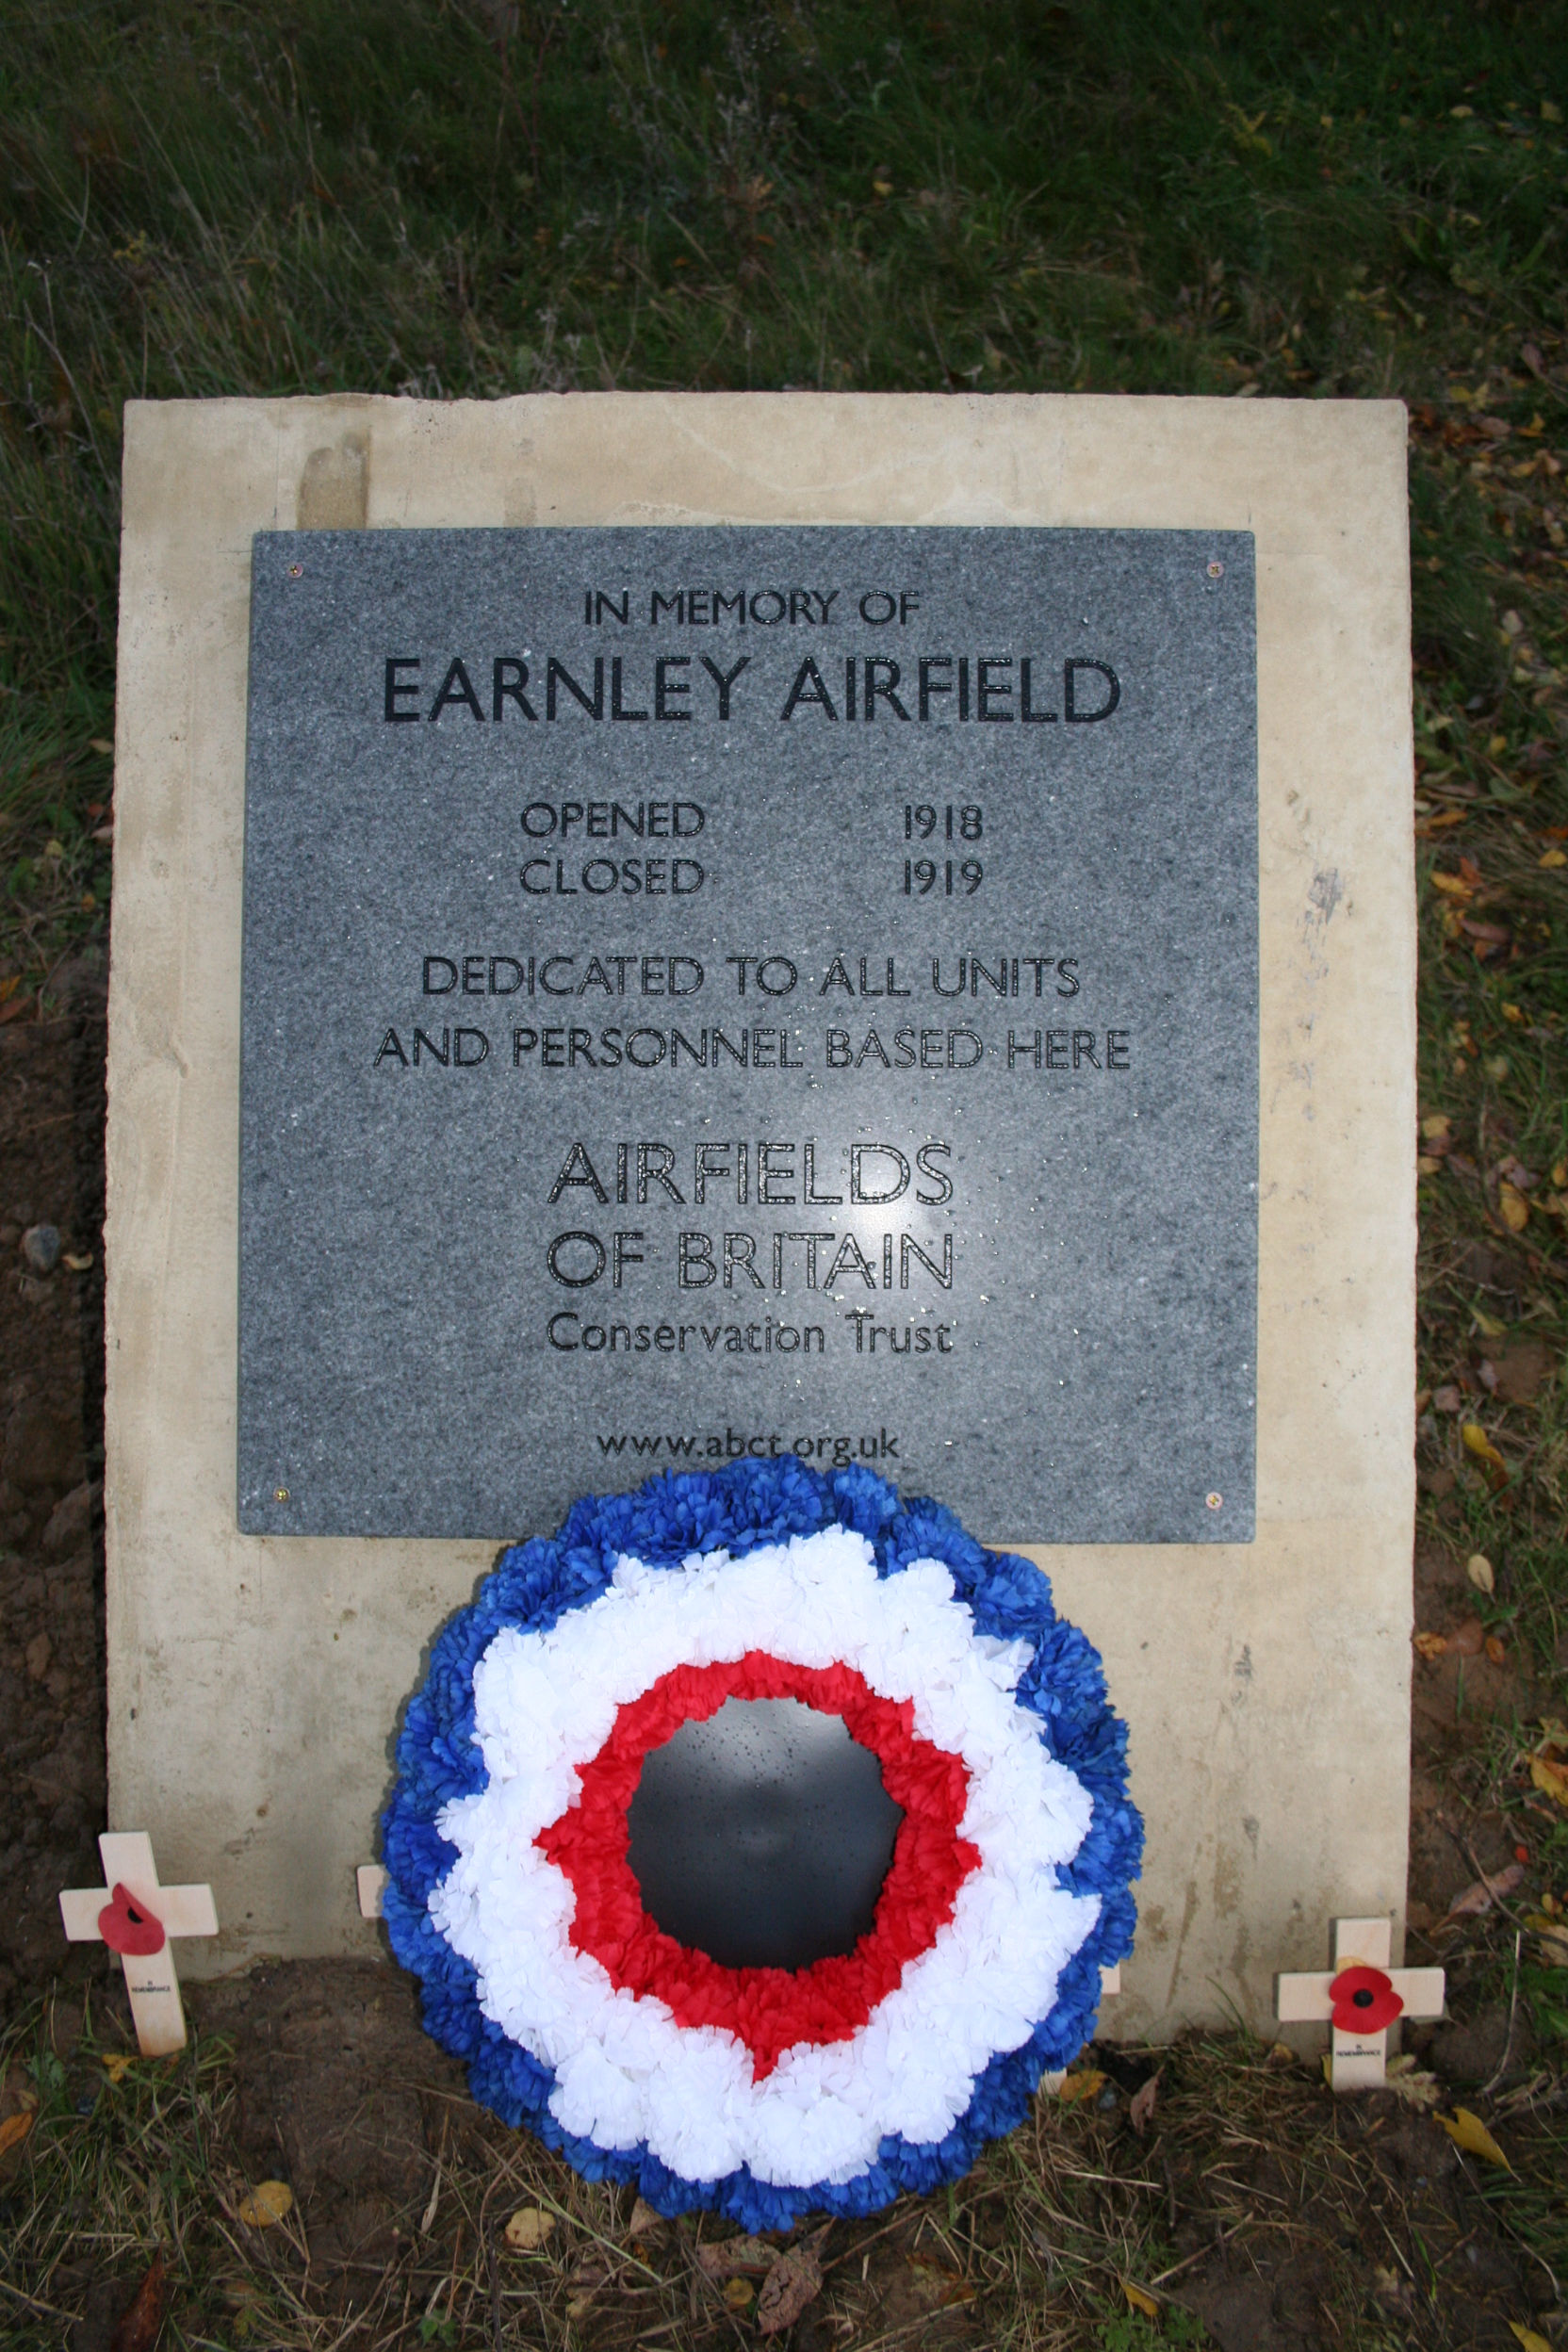 Earnley Airfield Commemrative plaque with raf wreath